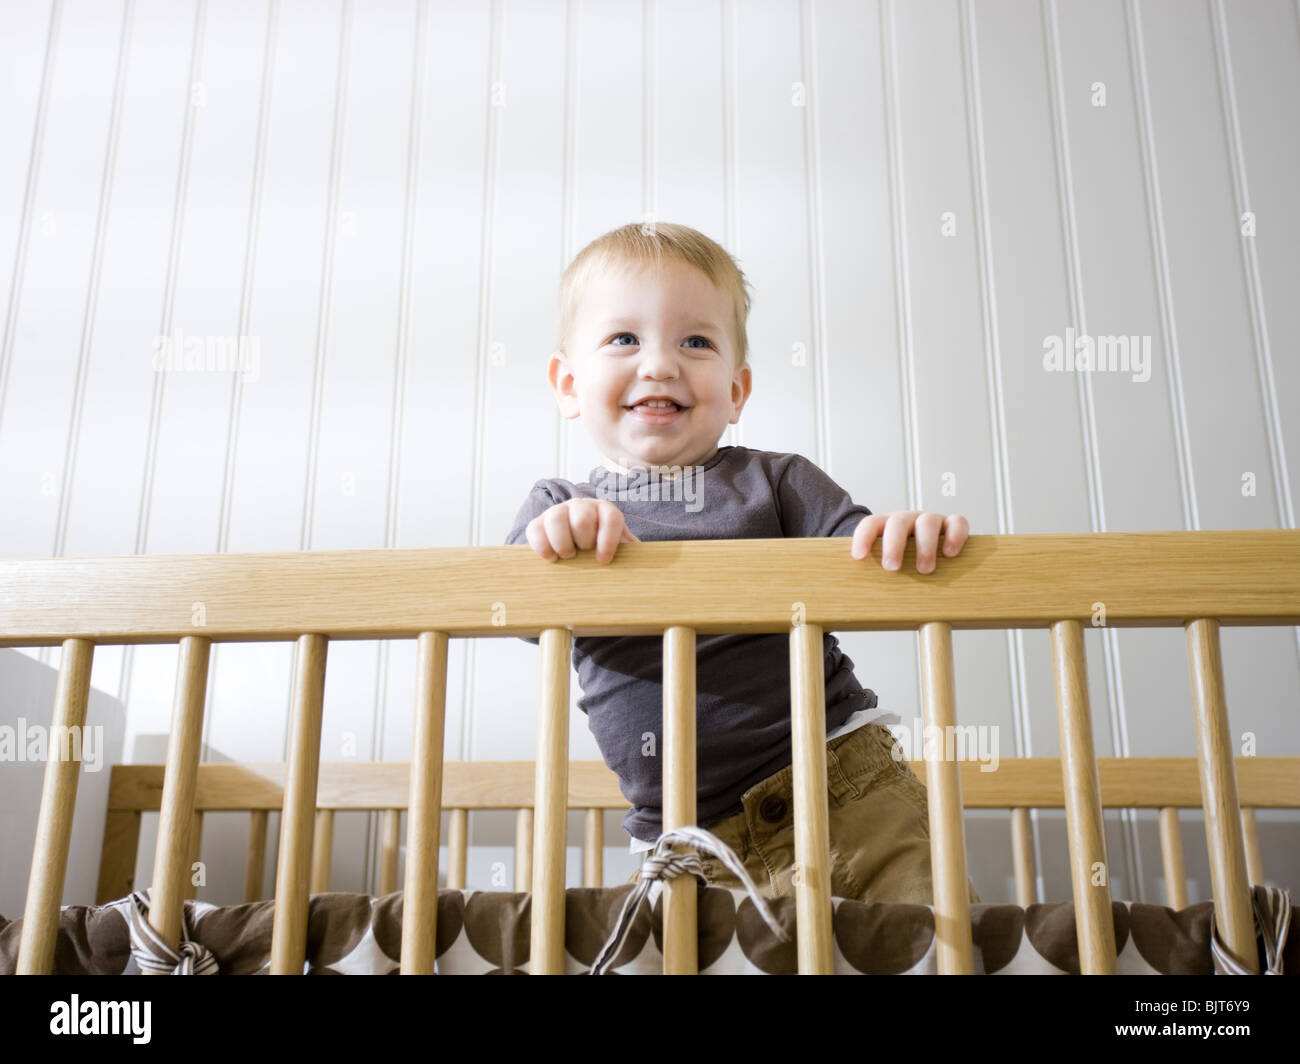 USA, Utah, Provo, Baby boy (18-23 months) standing in crib - Stock Image